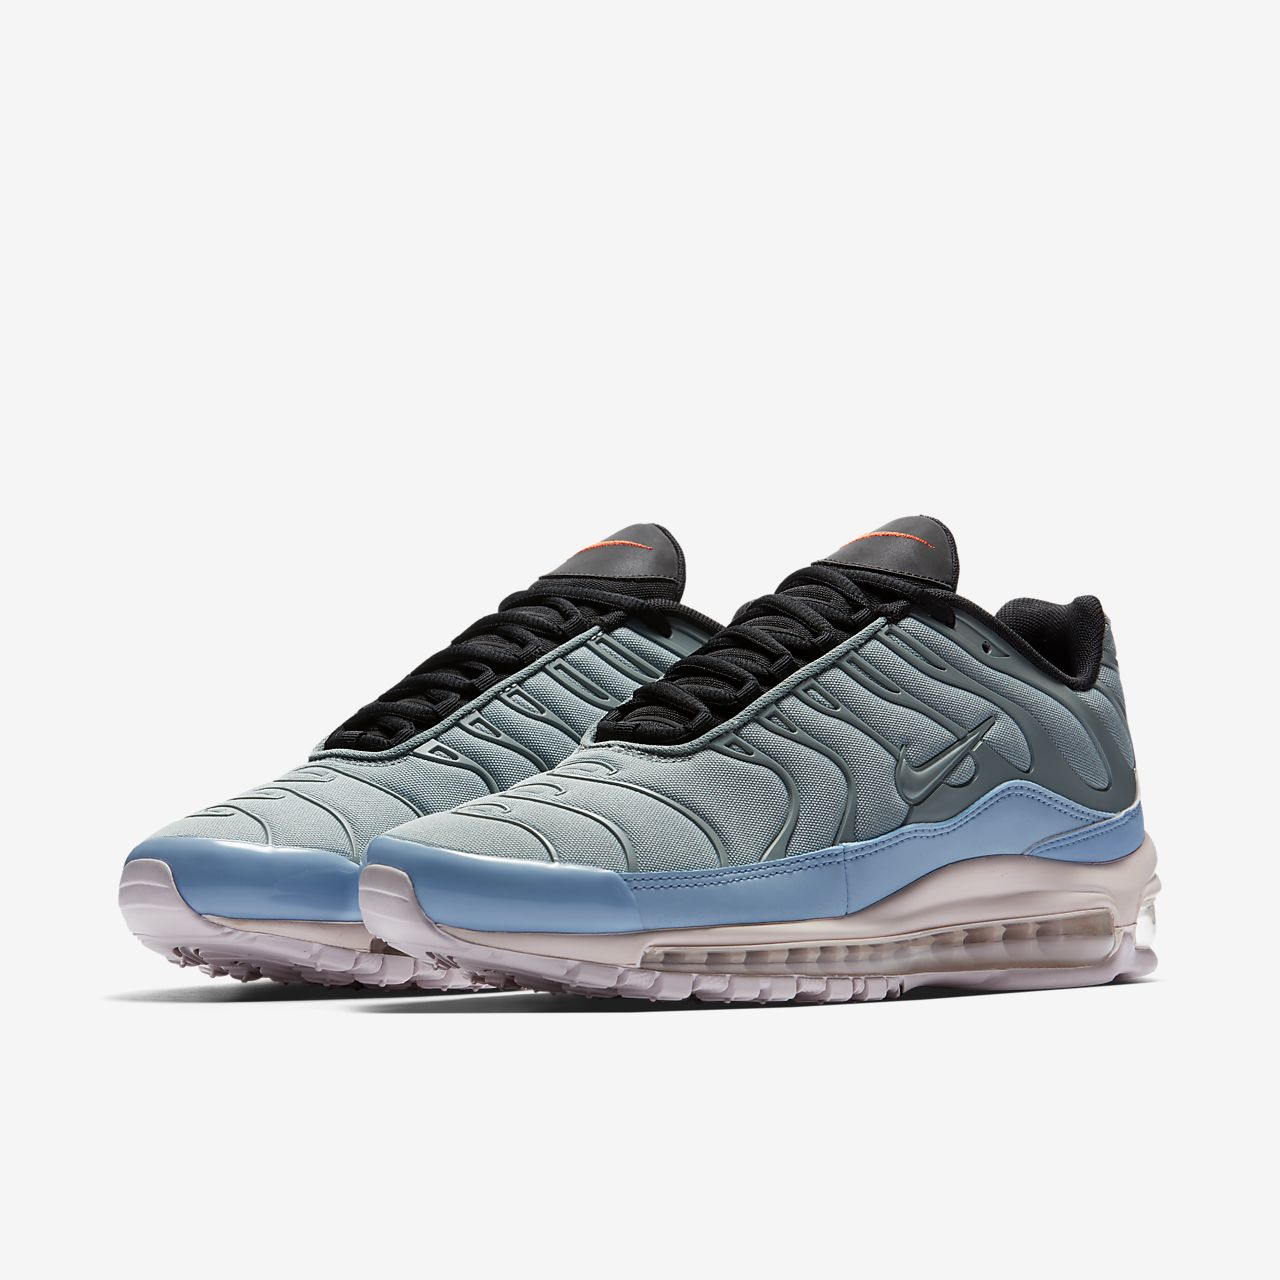 Nike Air Max 97 Country Camo Pack Le Site de la Sneaker